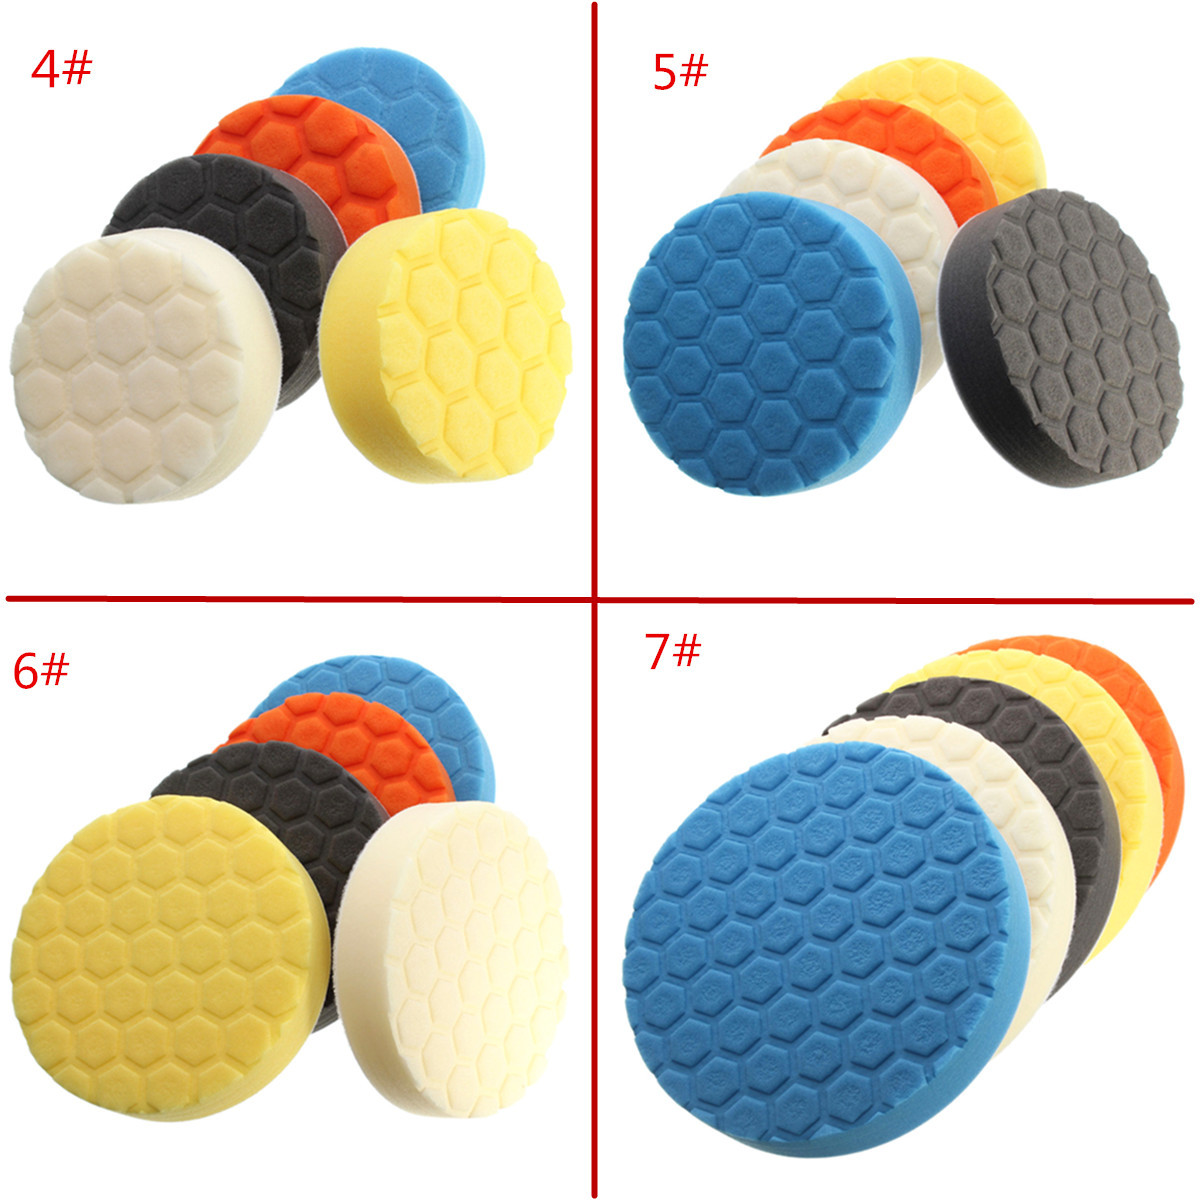 4/5/6/7 Inch Hex-Logic Sponge Polishing Pad Buffing Kit